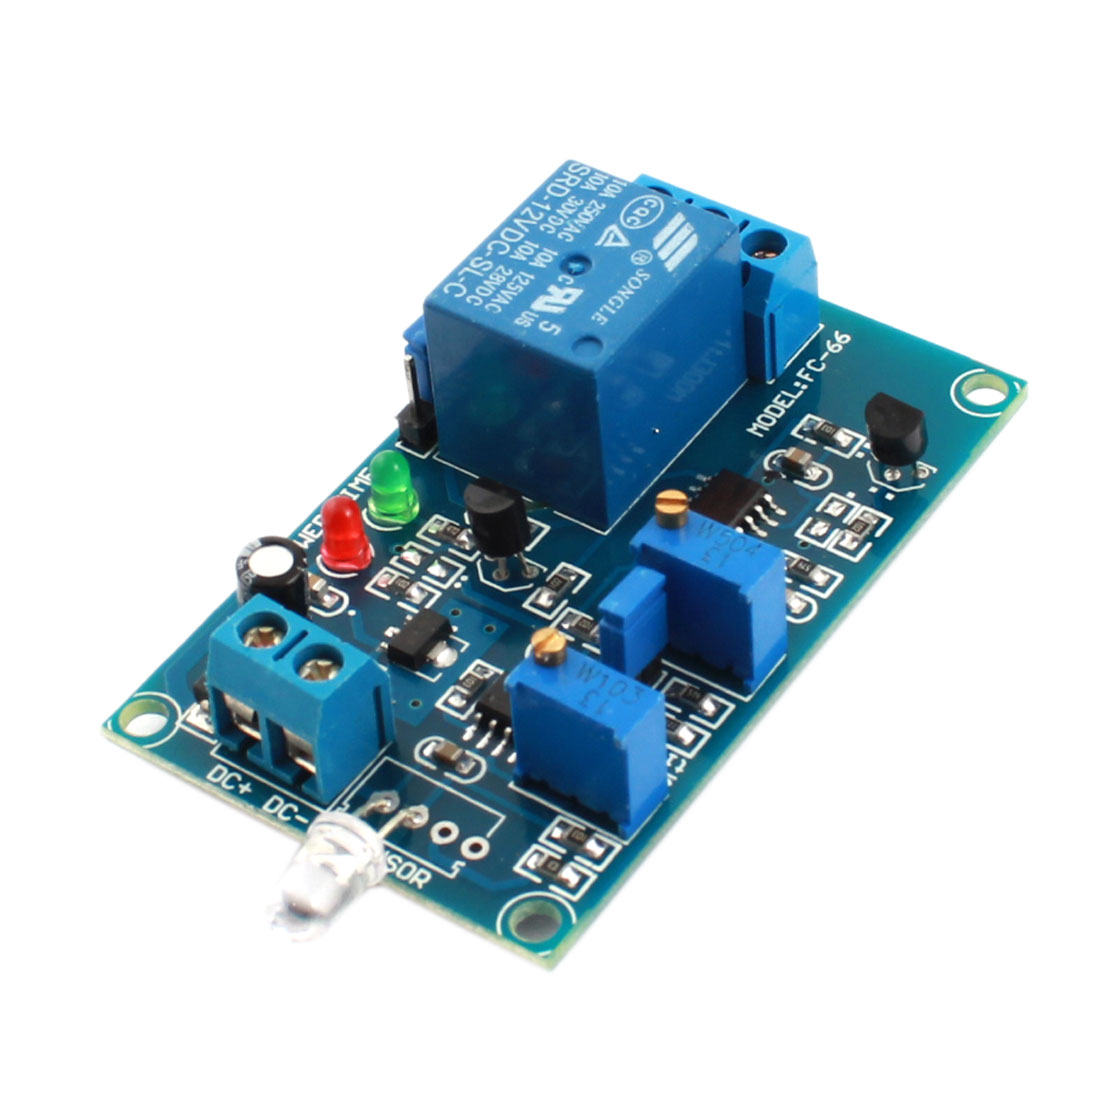 FC-66 DC 12V 1-CH Photosensitive Detection Sensor Time Delay Relay PCB Circuit Module Green